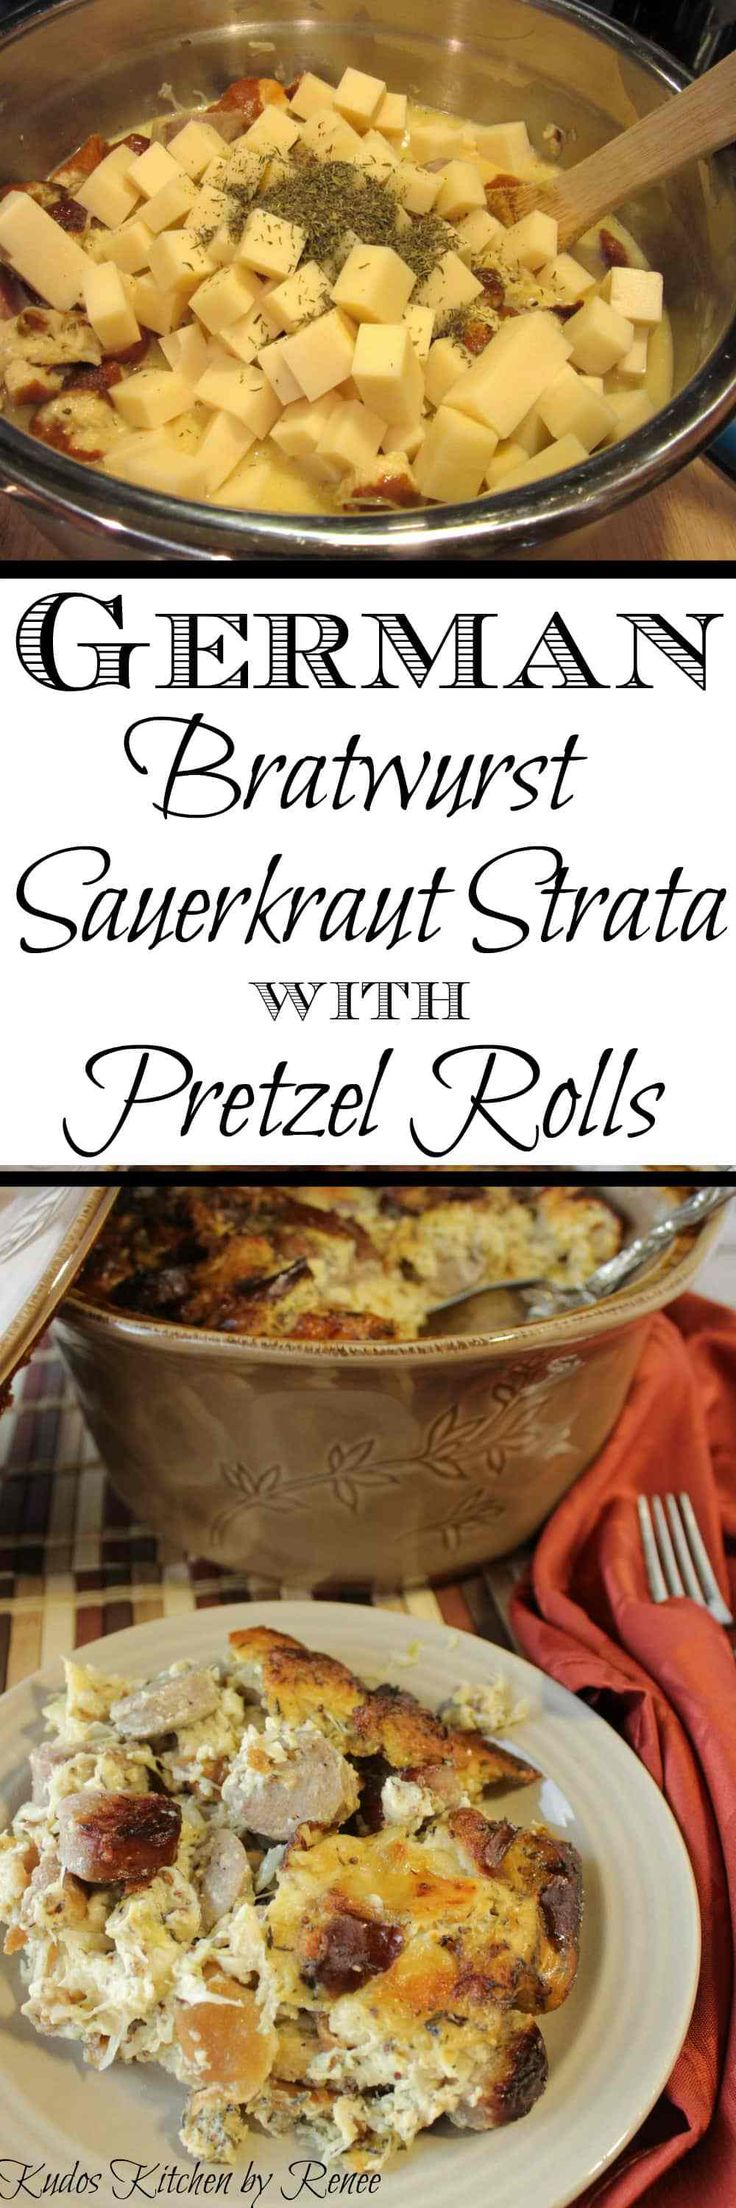 Hearty, meaty chunks of German bratwurst are simmered in beer and caraway before being combined with pieces of soft, flavorful pretzel rolls. Next, they're mixed with tangy sauerkraut, stone ground mustard, and lots and lots of Swiss cheese before being smothered in an egg, milk and mustard mixture and then baked to a delicious golden brown. - Kudos Kitchen by Renee - www.kudoskitchenbyrenee.com